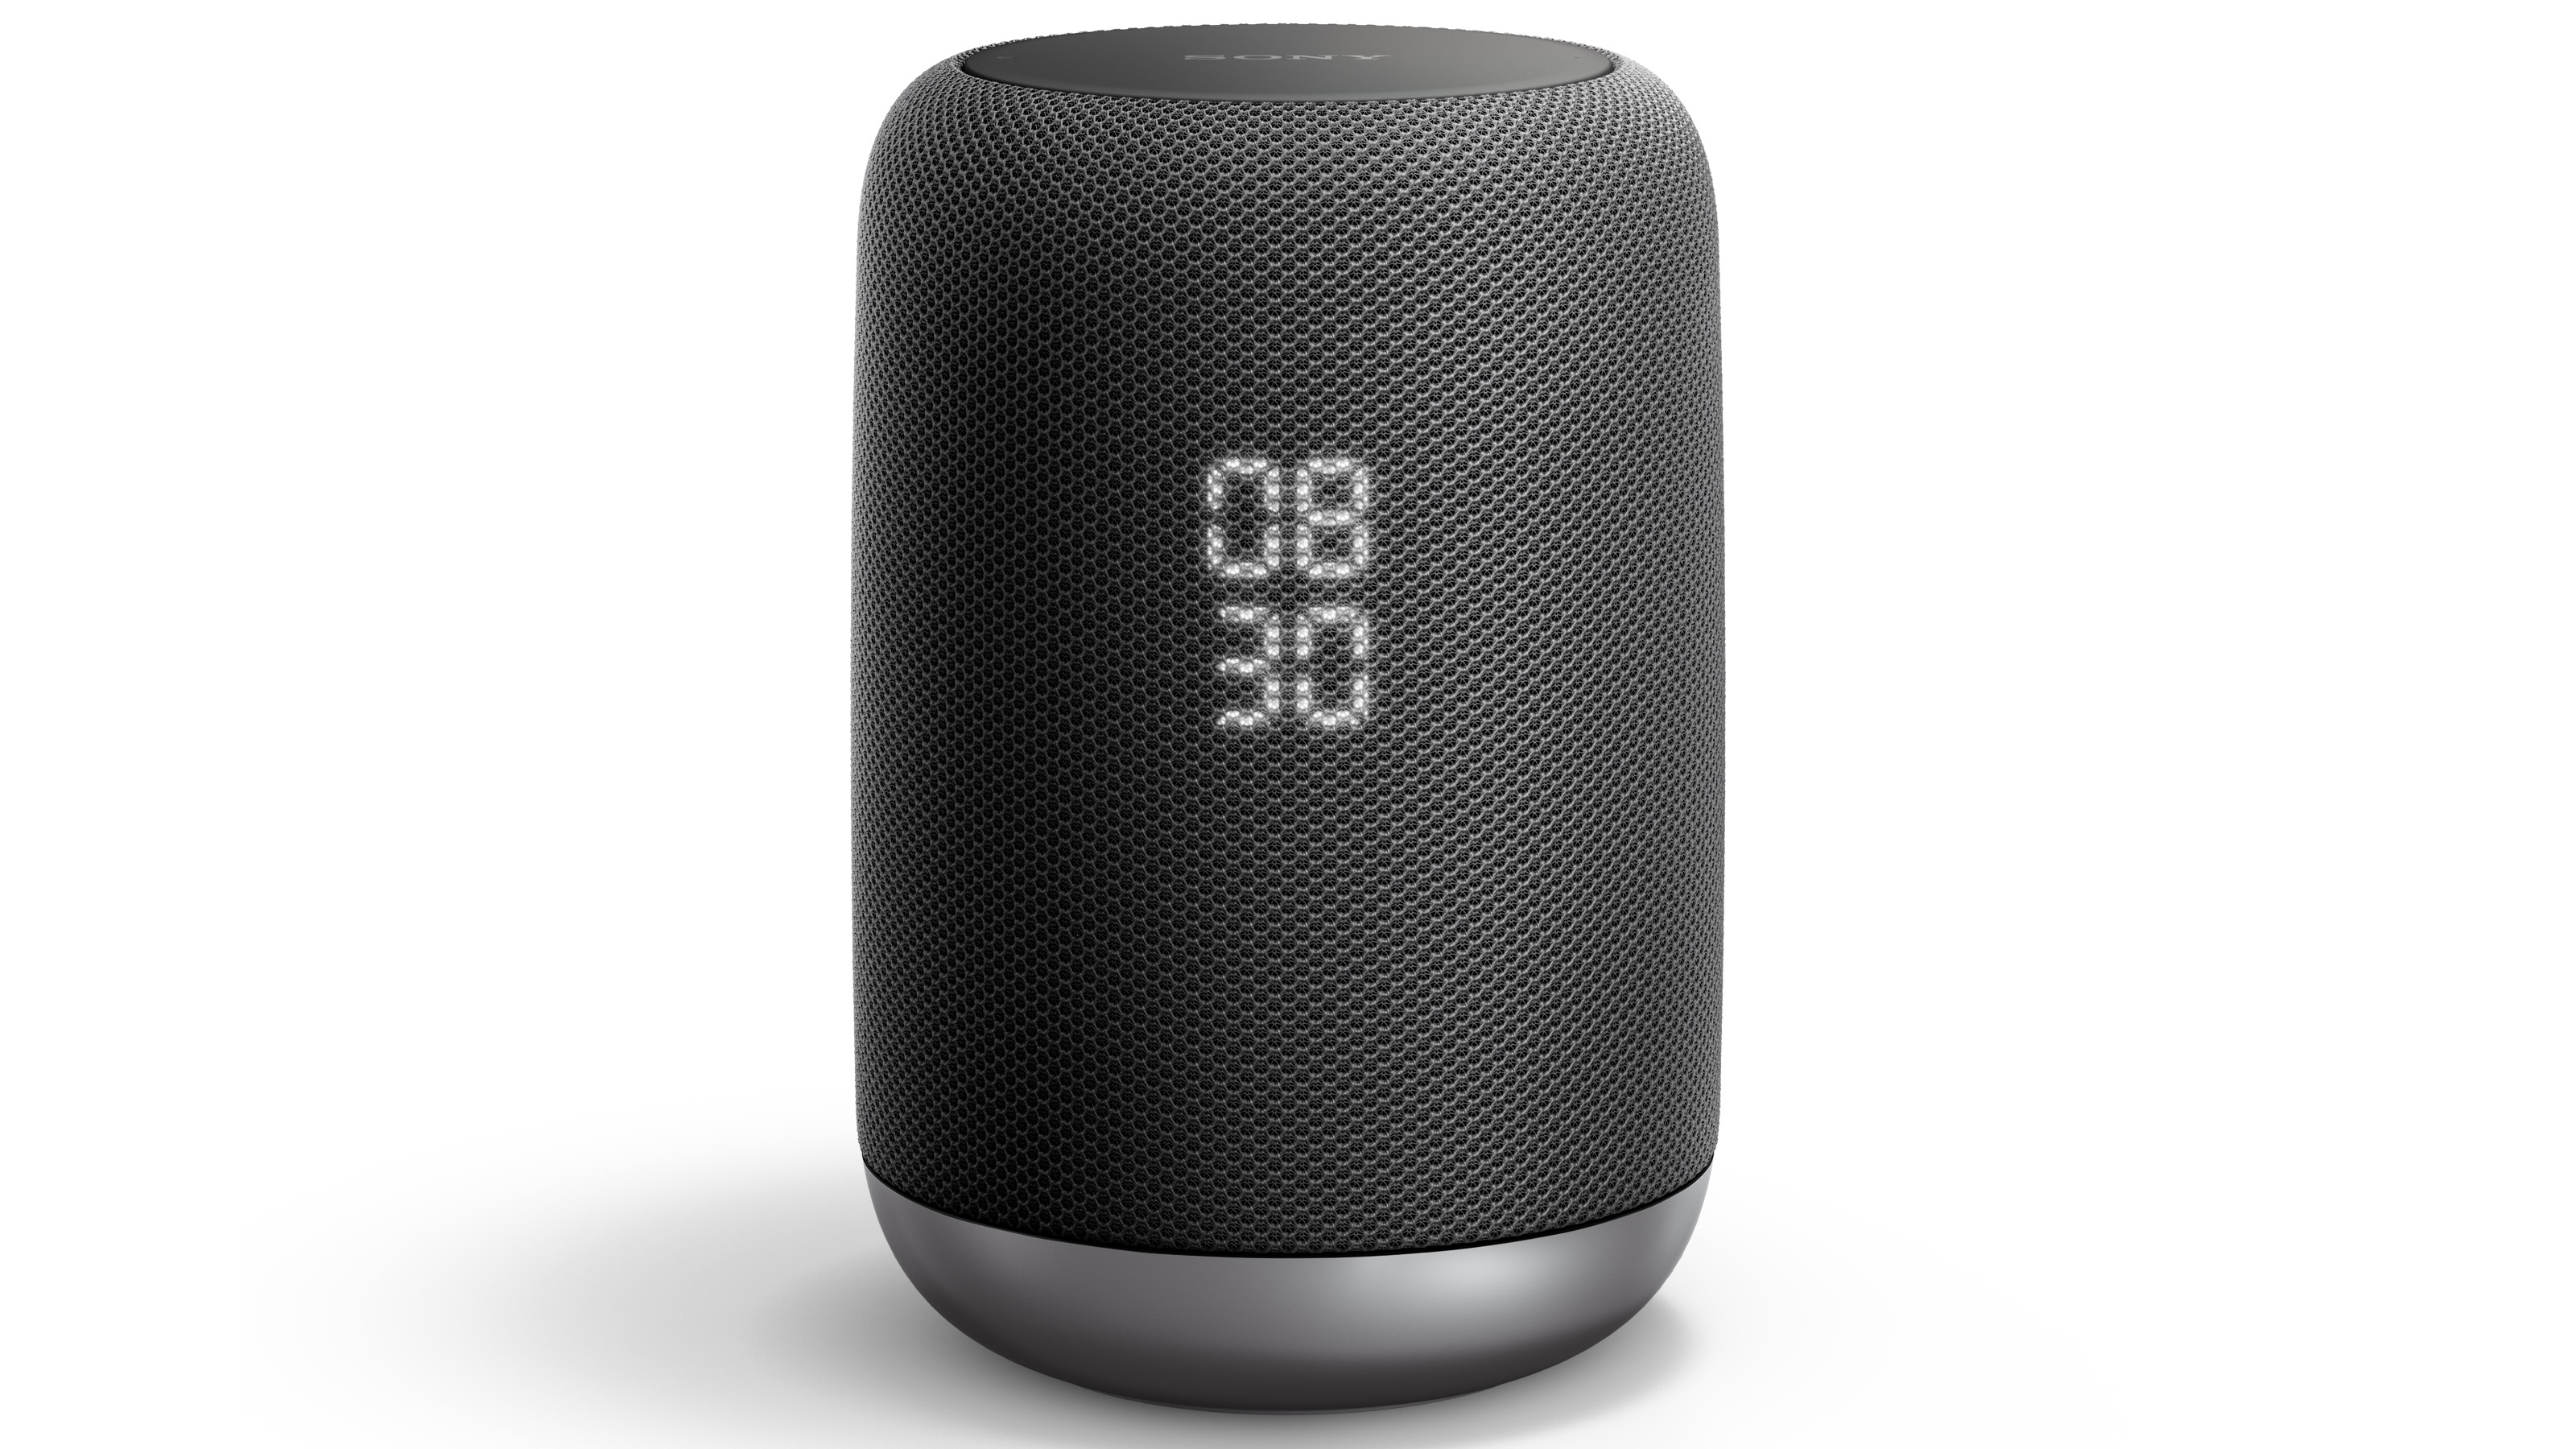 The new Sony smart speaker